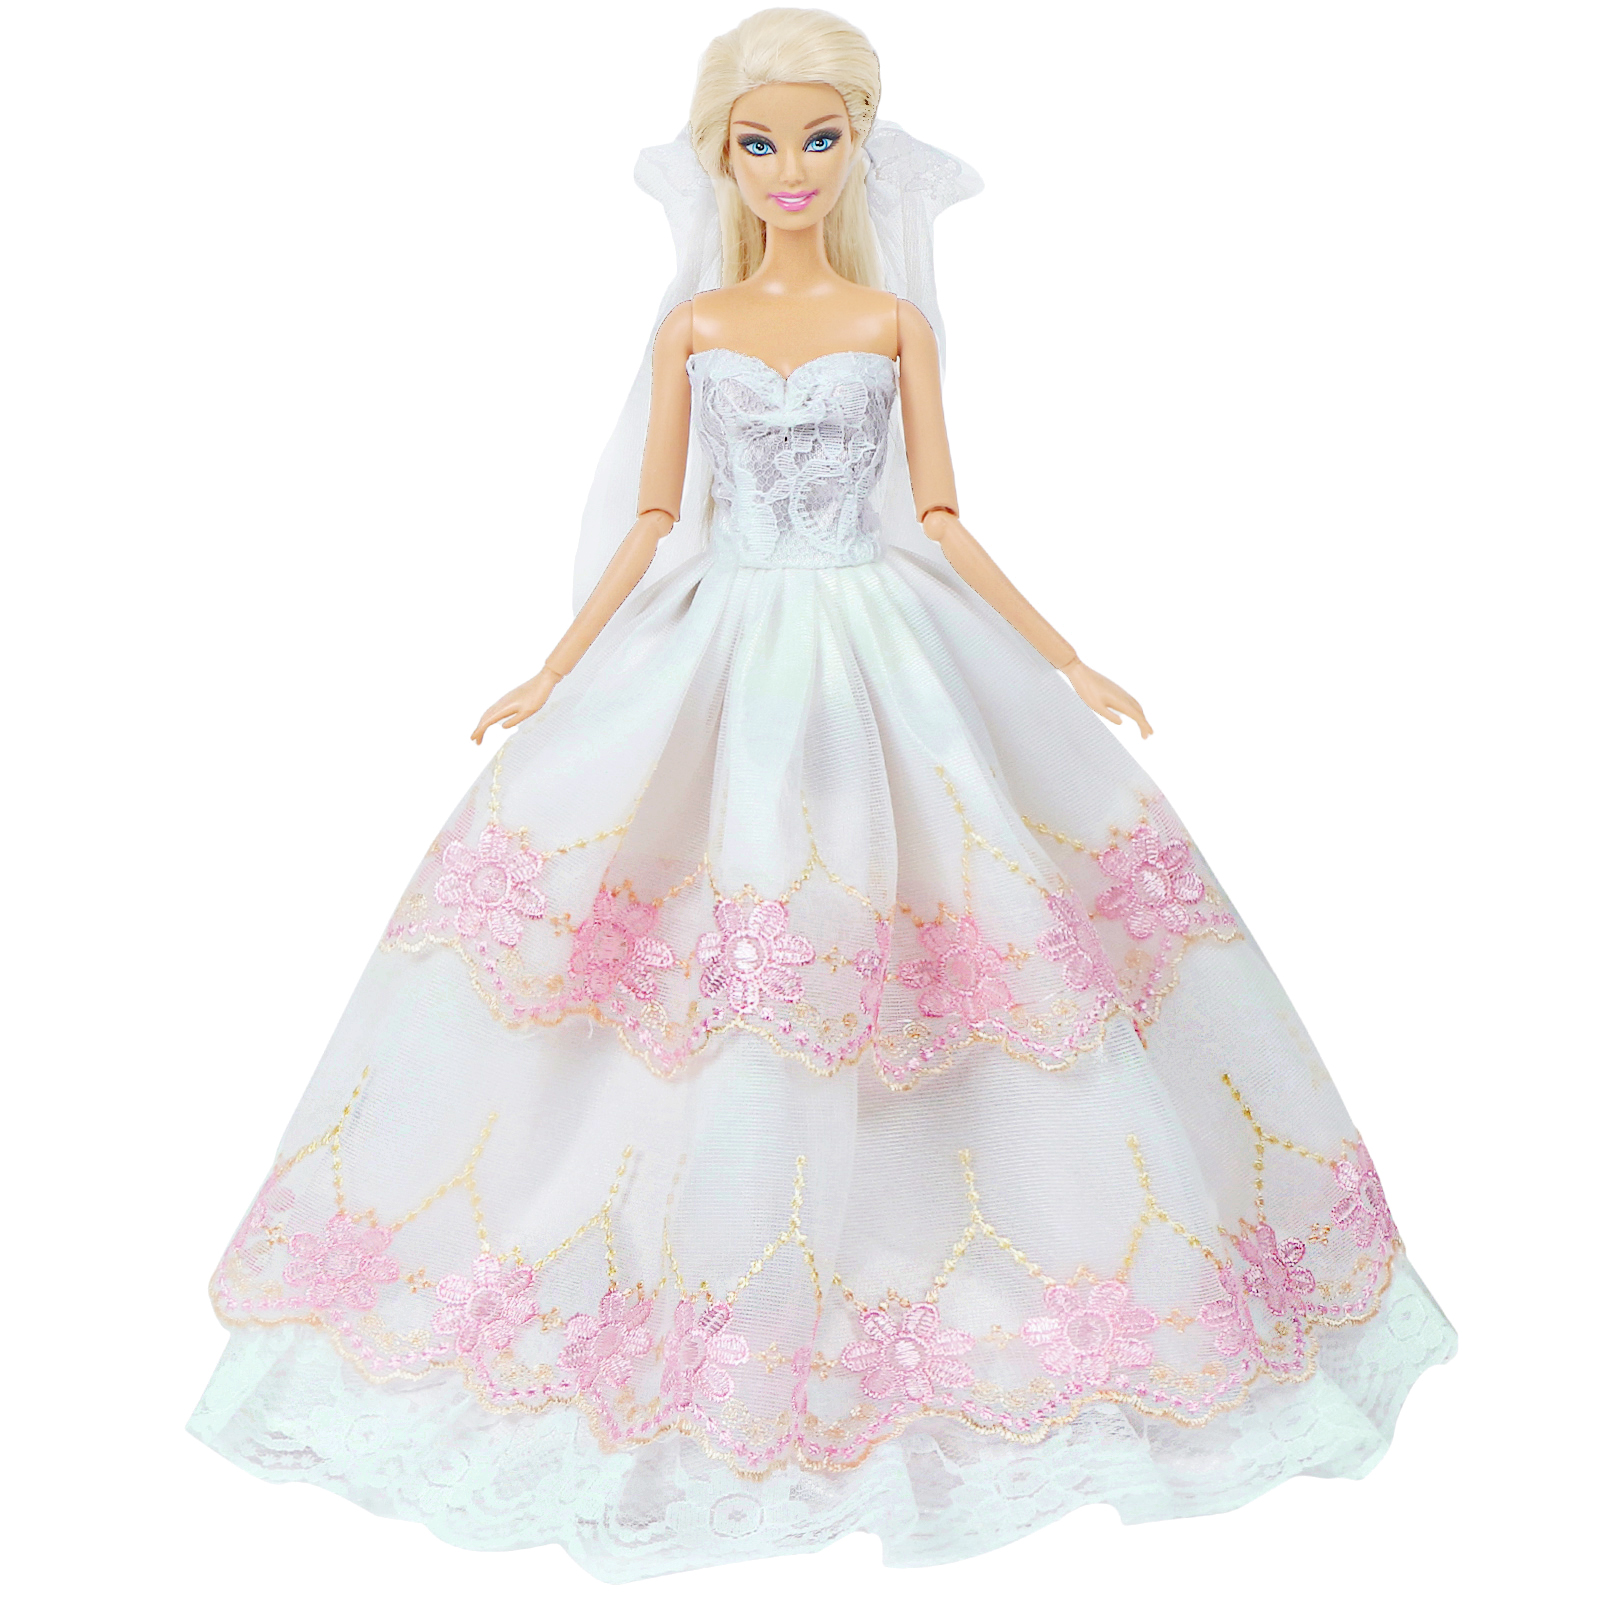 Barbie White Fashion Royalty Party Princess Dress Clothes//Gown For 30CM Doll